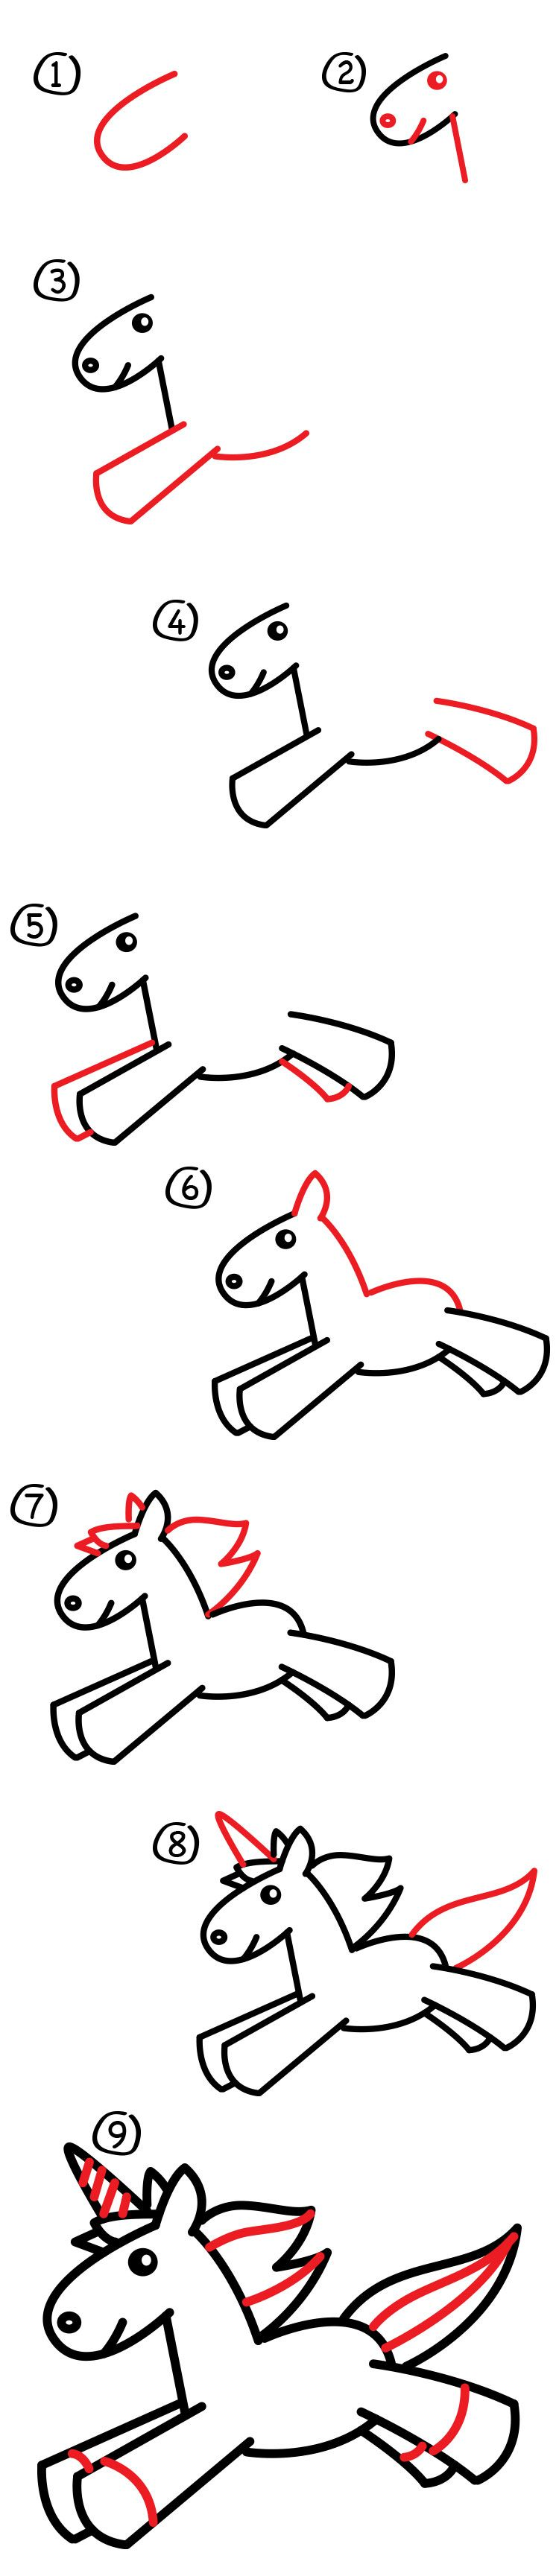 Learn How To Draw A Unicorn Step By Watch Our Short Video And Download Free Printable